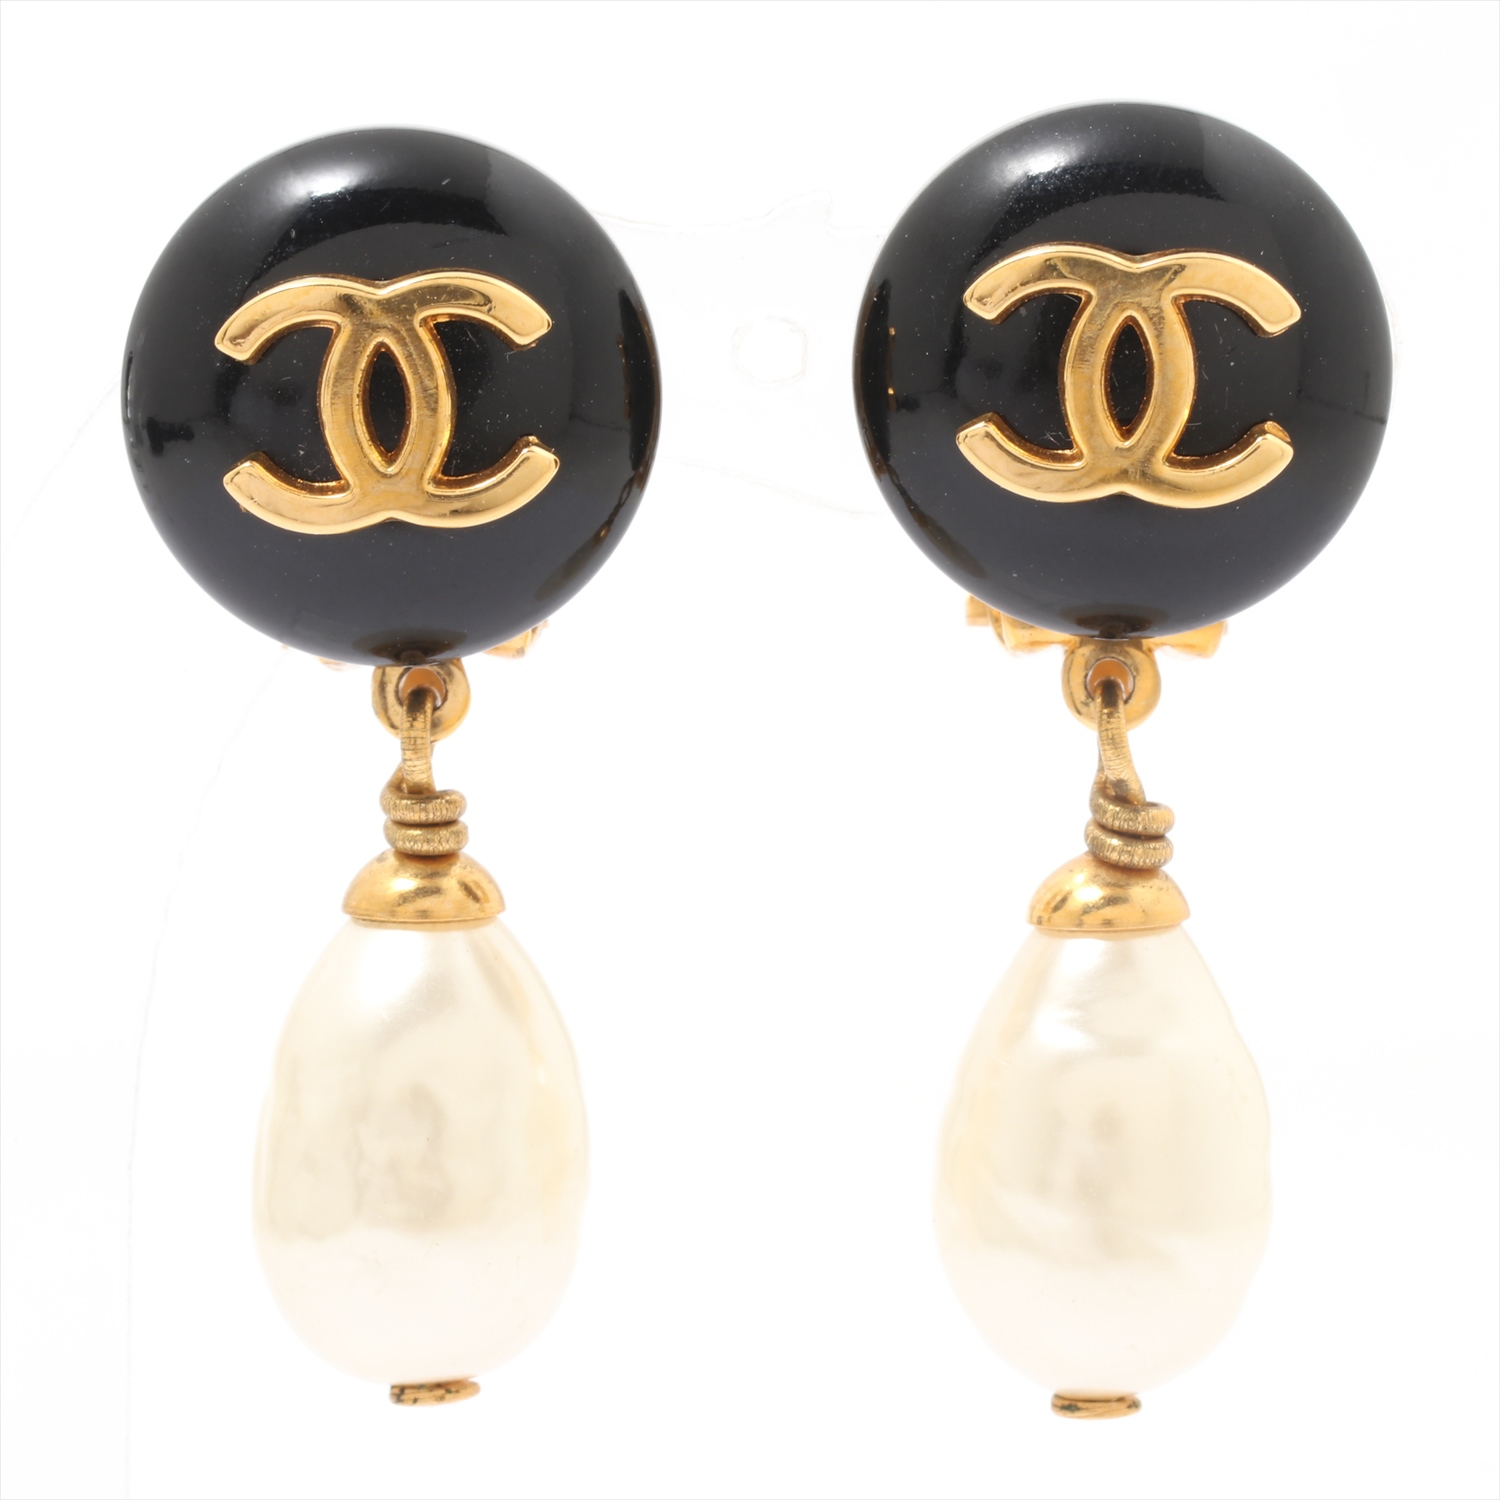 [Used article] (for both ears) Chanel earrings GP gold here Mark Pearl